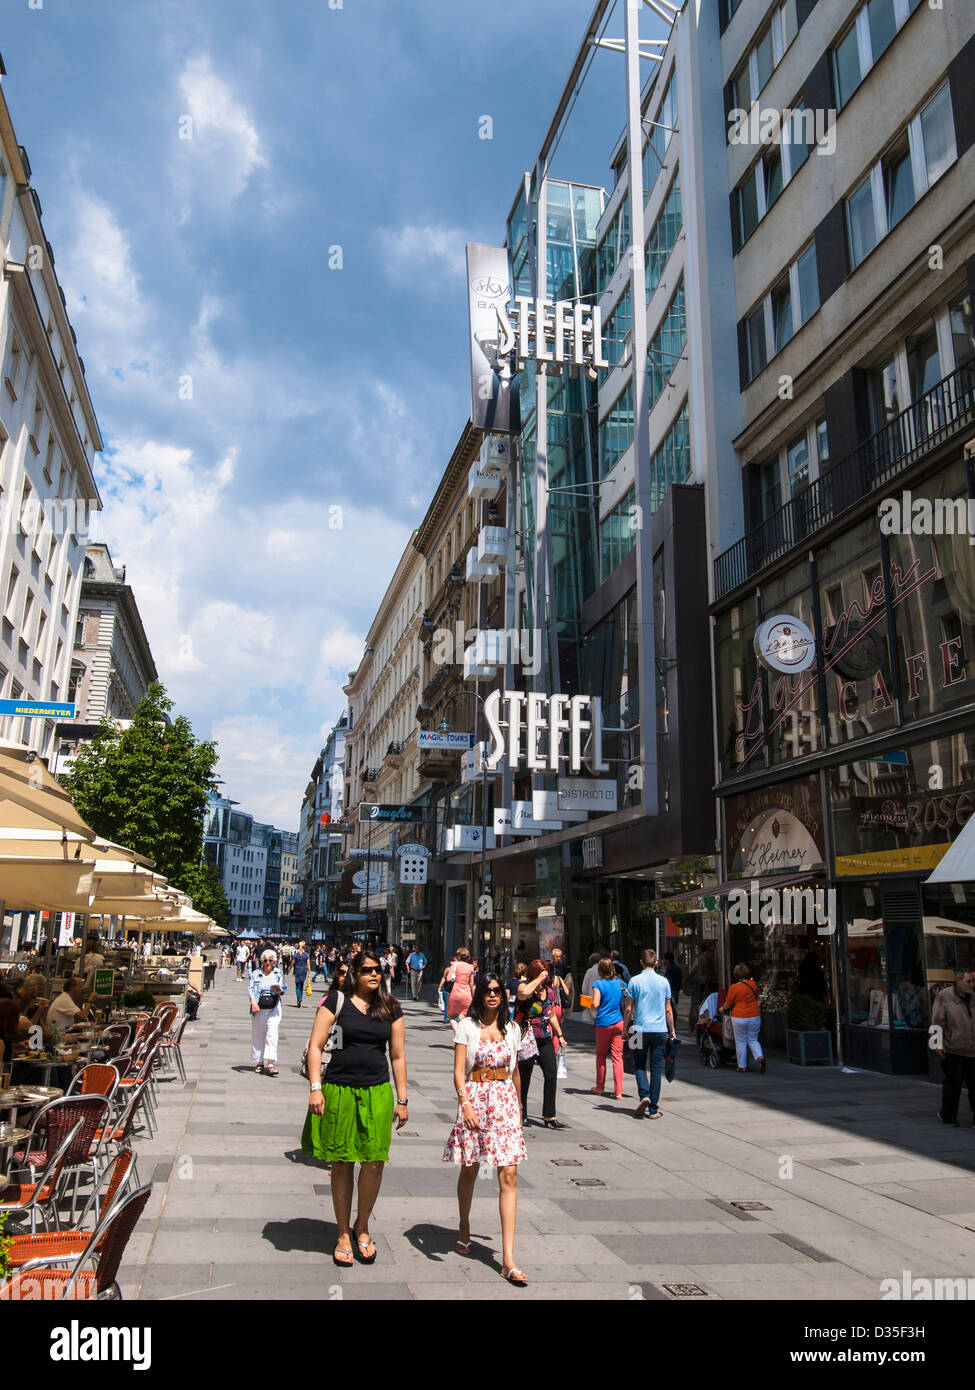 993174a6759934 Steffl shopping mall in central Vienna - Stock Image